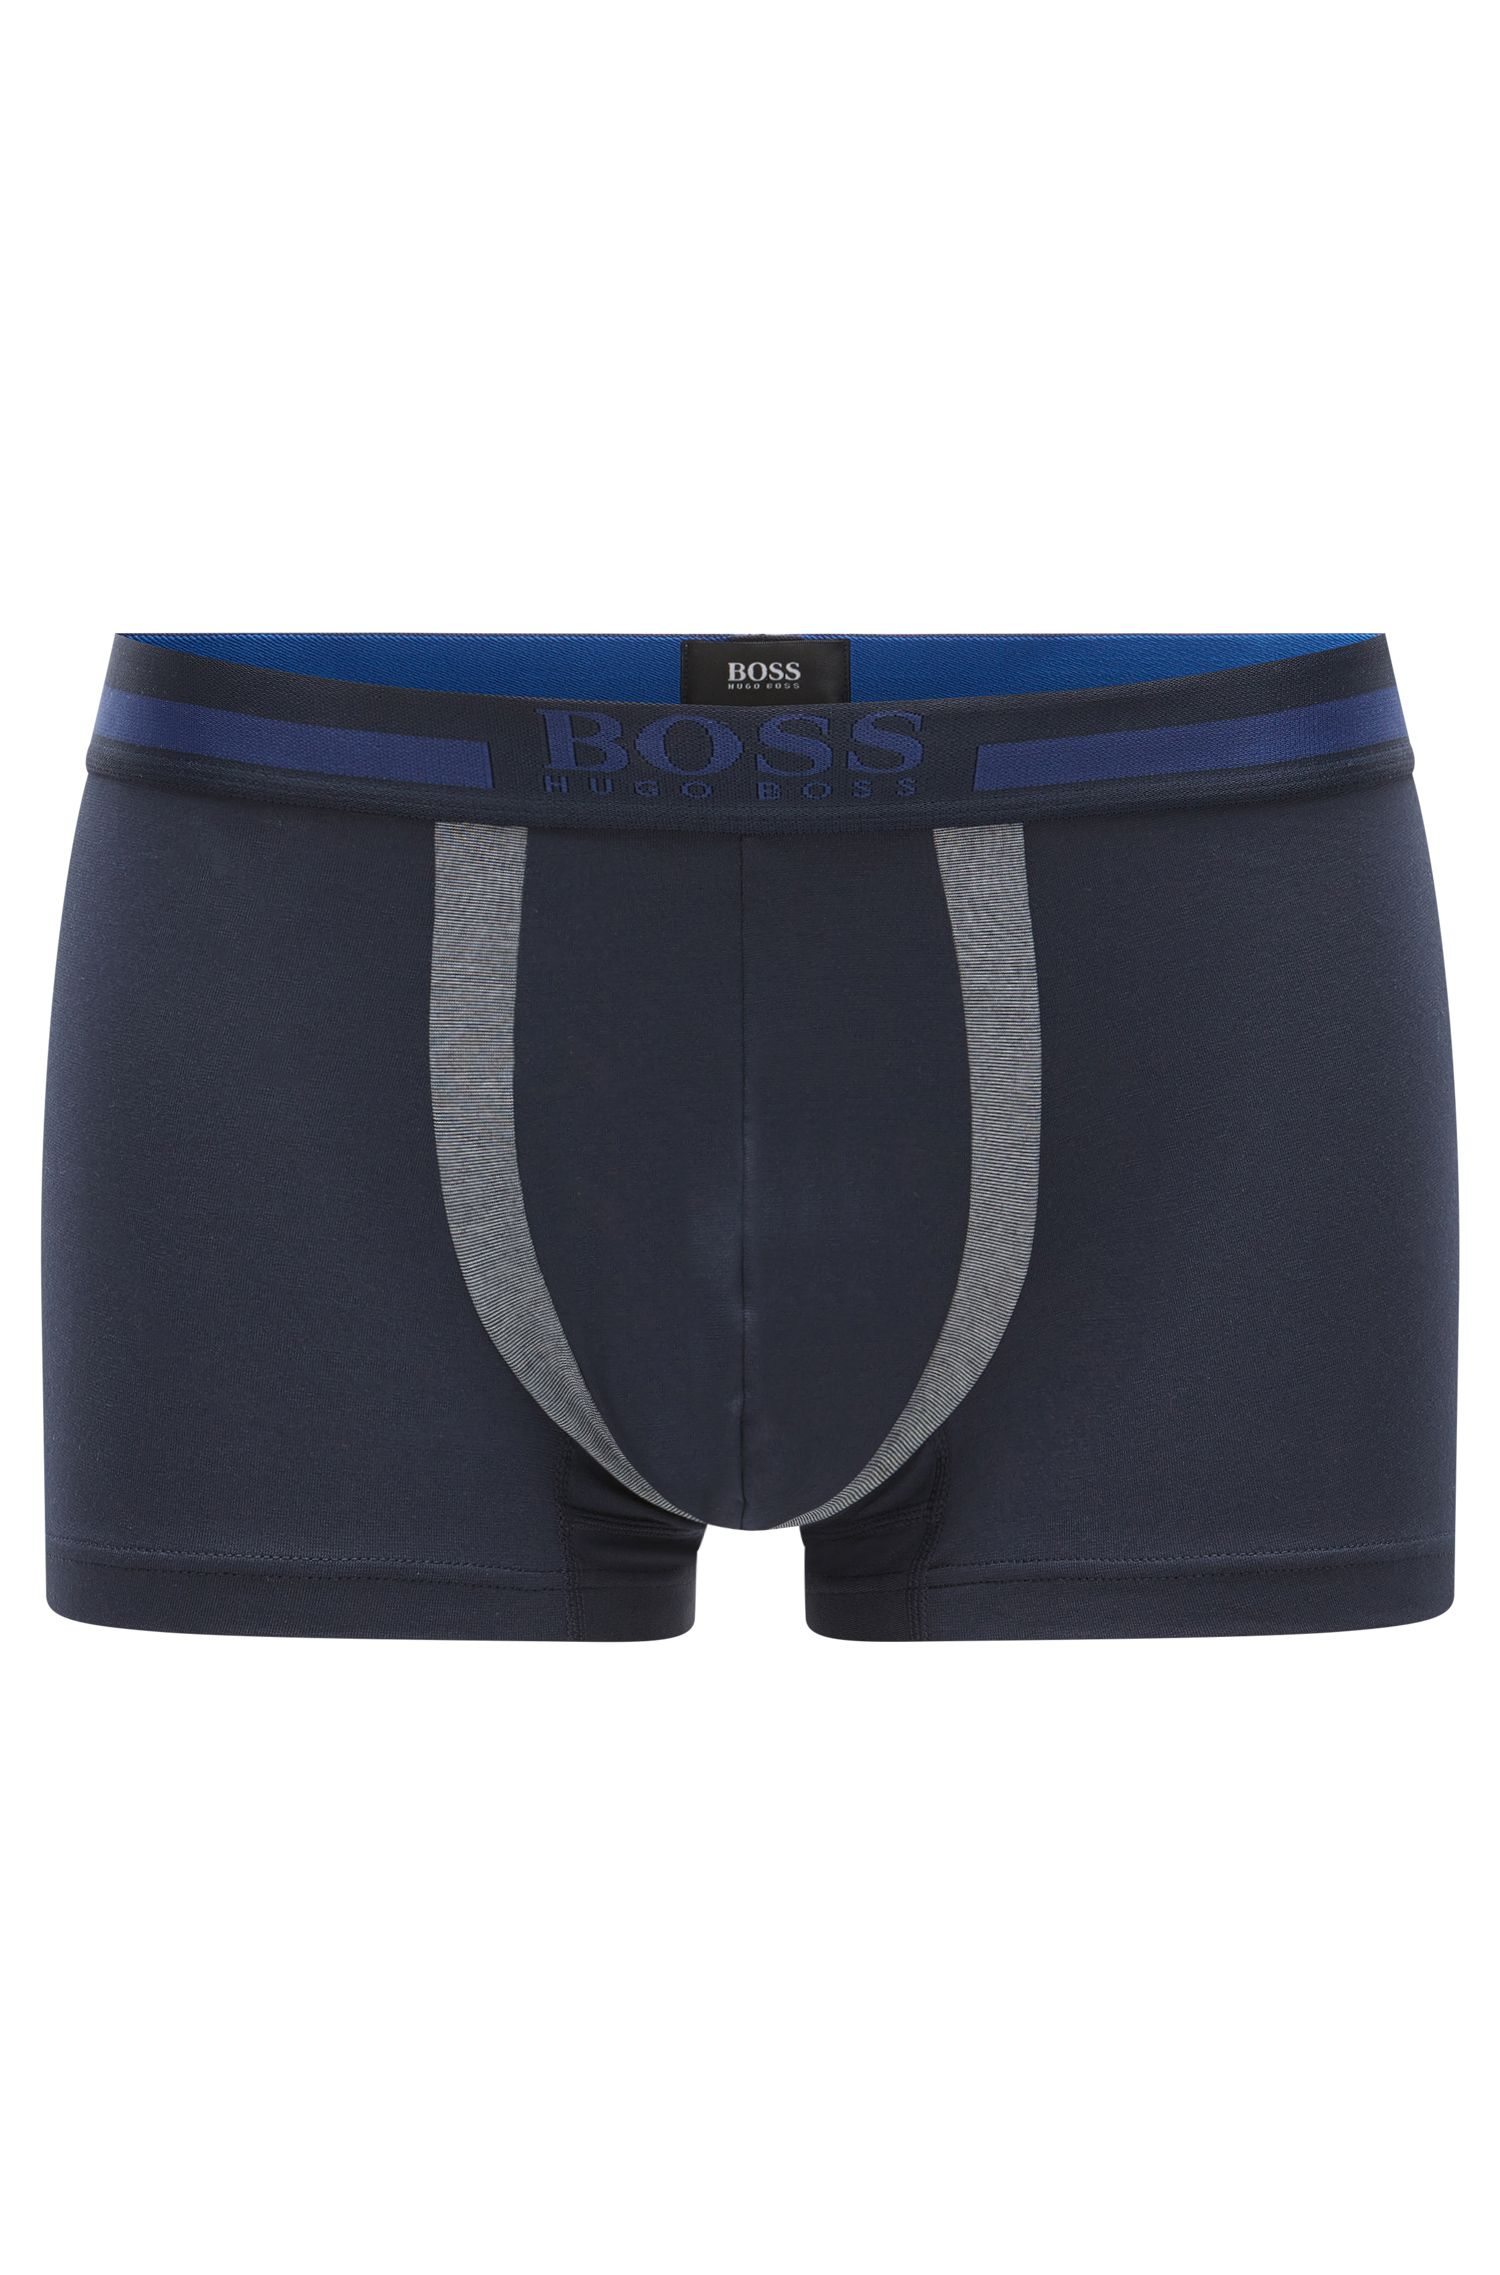 Travel Line Boxershorts aus atmungsaktivem Baumwoll-Mix: 'Trunk Cotton+'